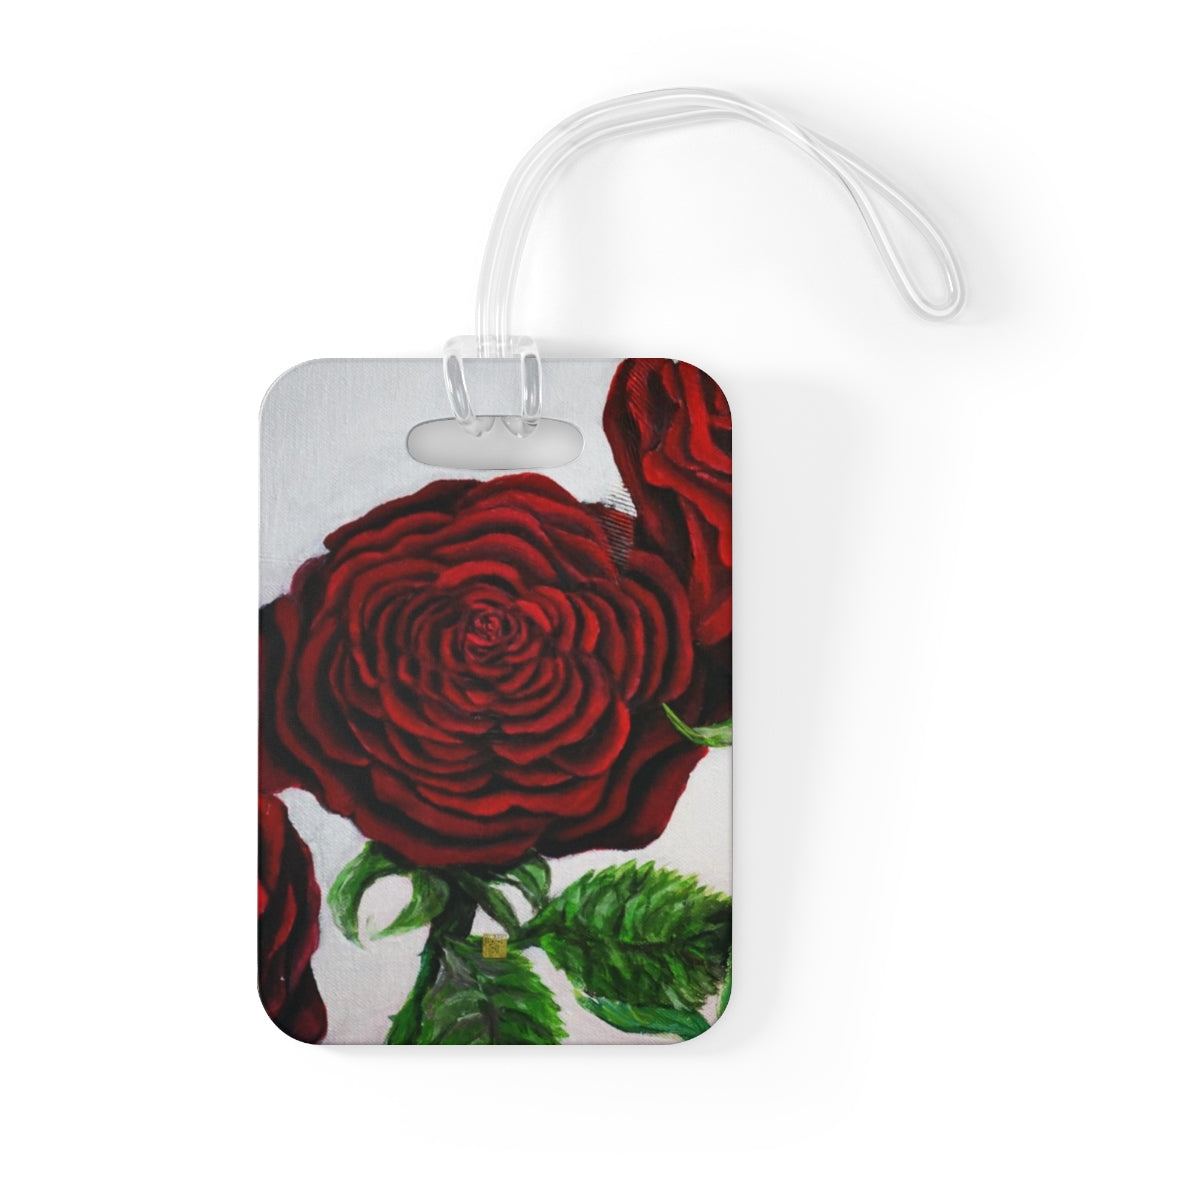 Romantic Triple Deep Red Roses in Silver, Floral Glossy Lightweight Plastic Bag Tag, Made in USA - alicechanart